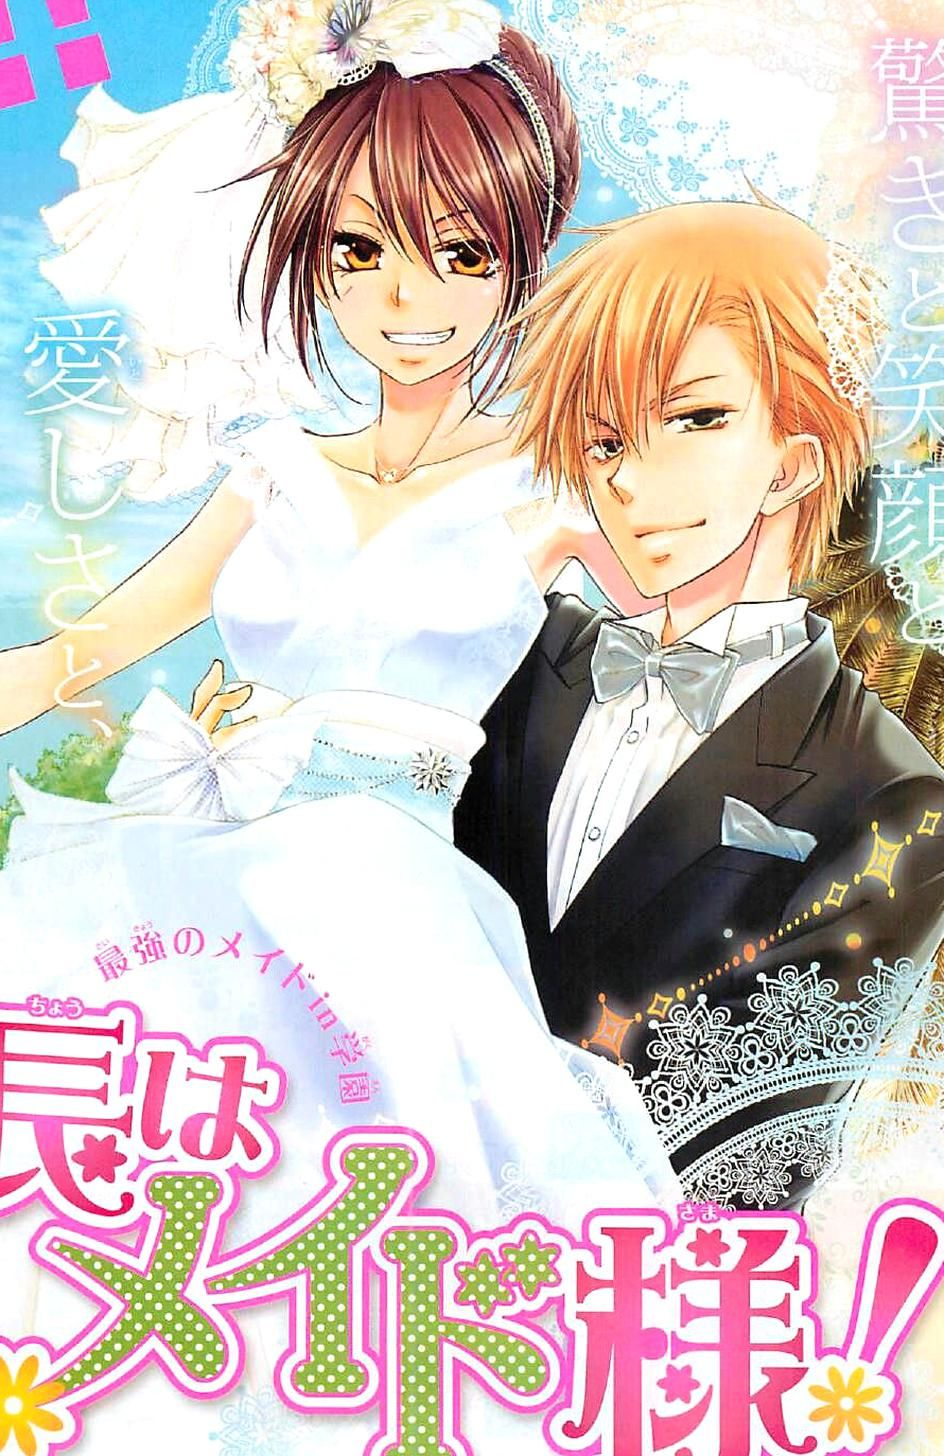 Good Anime in 2020 Maid sama, Kaichō wa maidsama!, Best